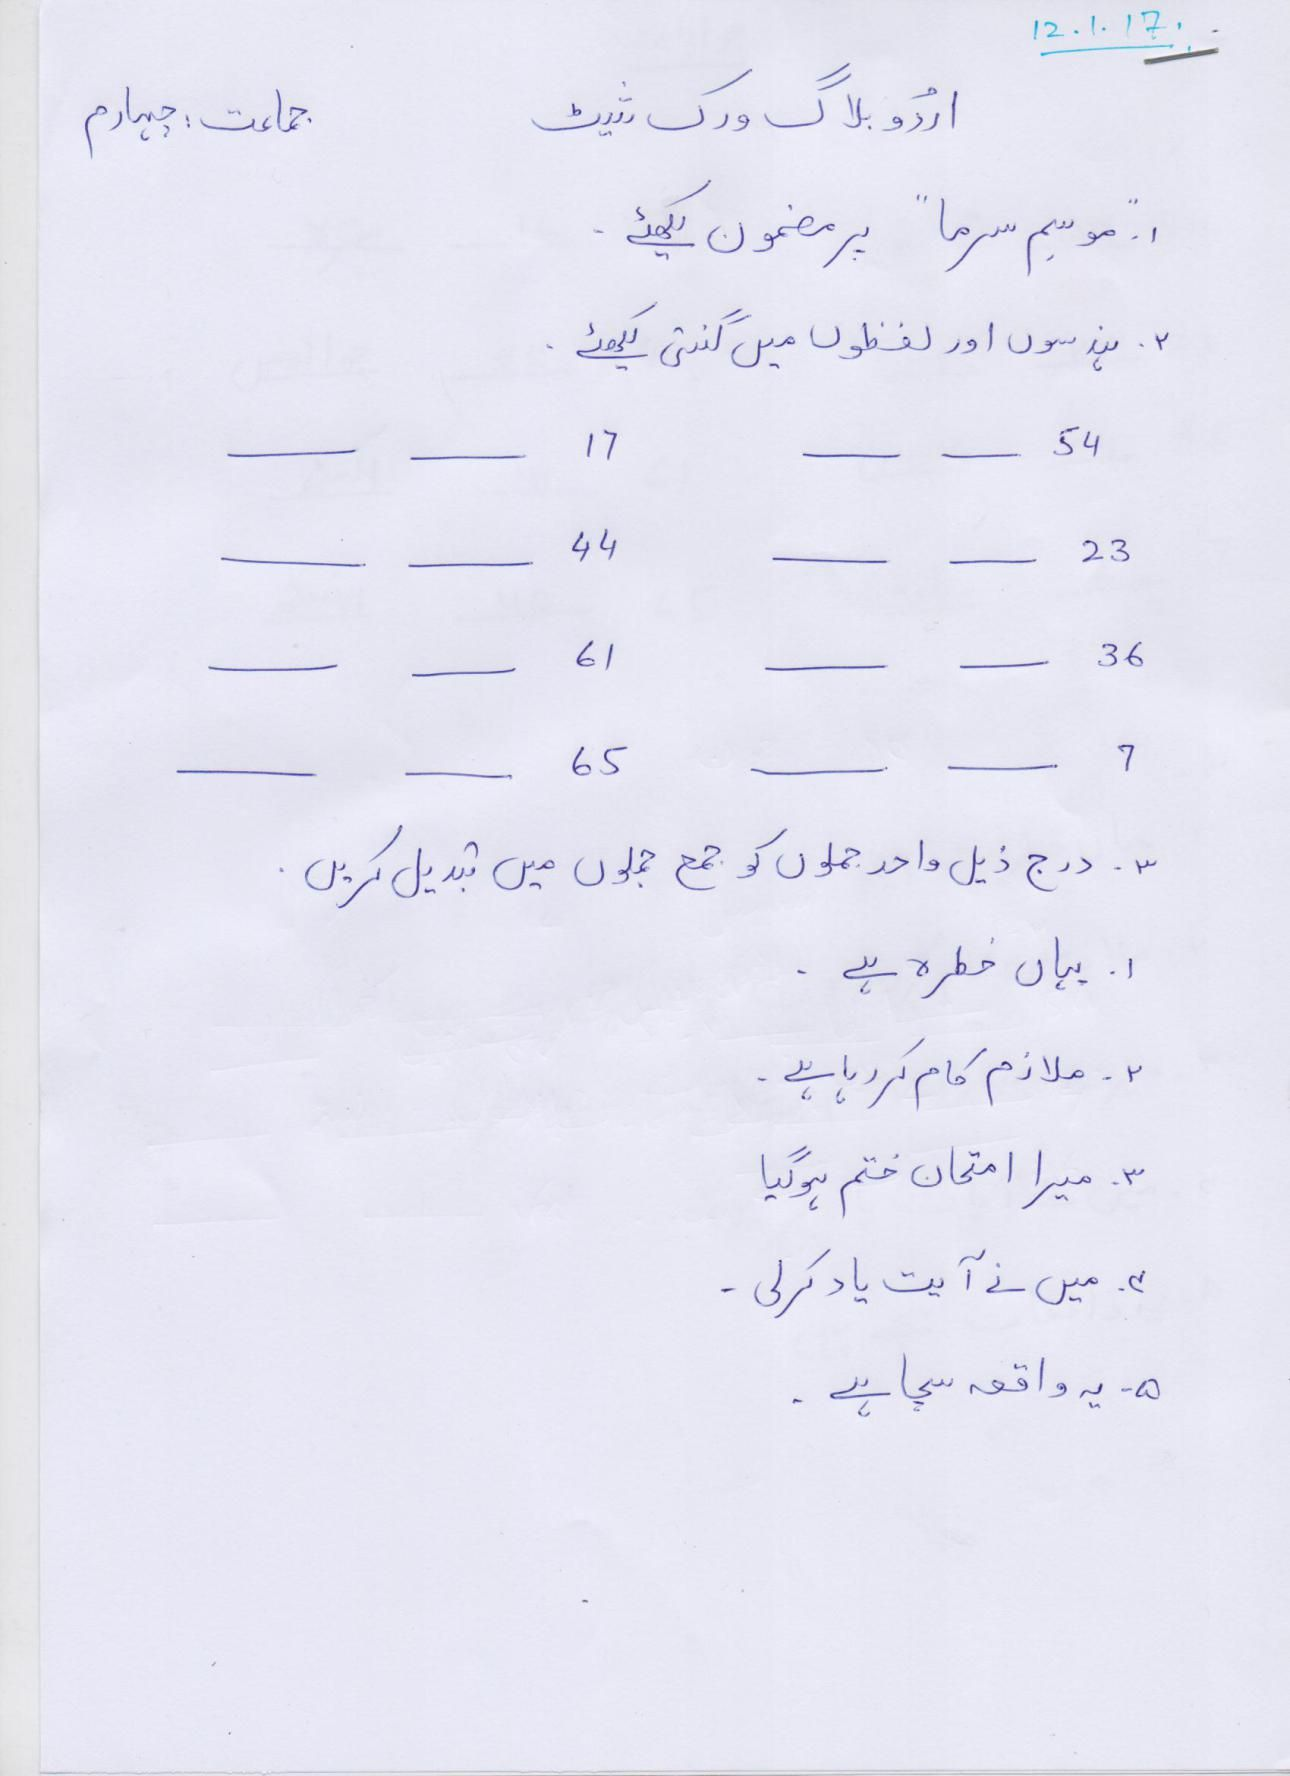 urdu blog worksheet class 4 13 1 17 arabi worksheets for grade 3 worksheets 2nd grade writing. Black Bedroom Furniture Sets. Home Design Ideas